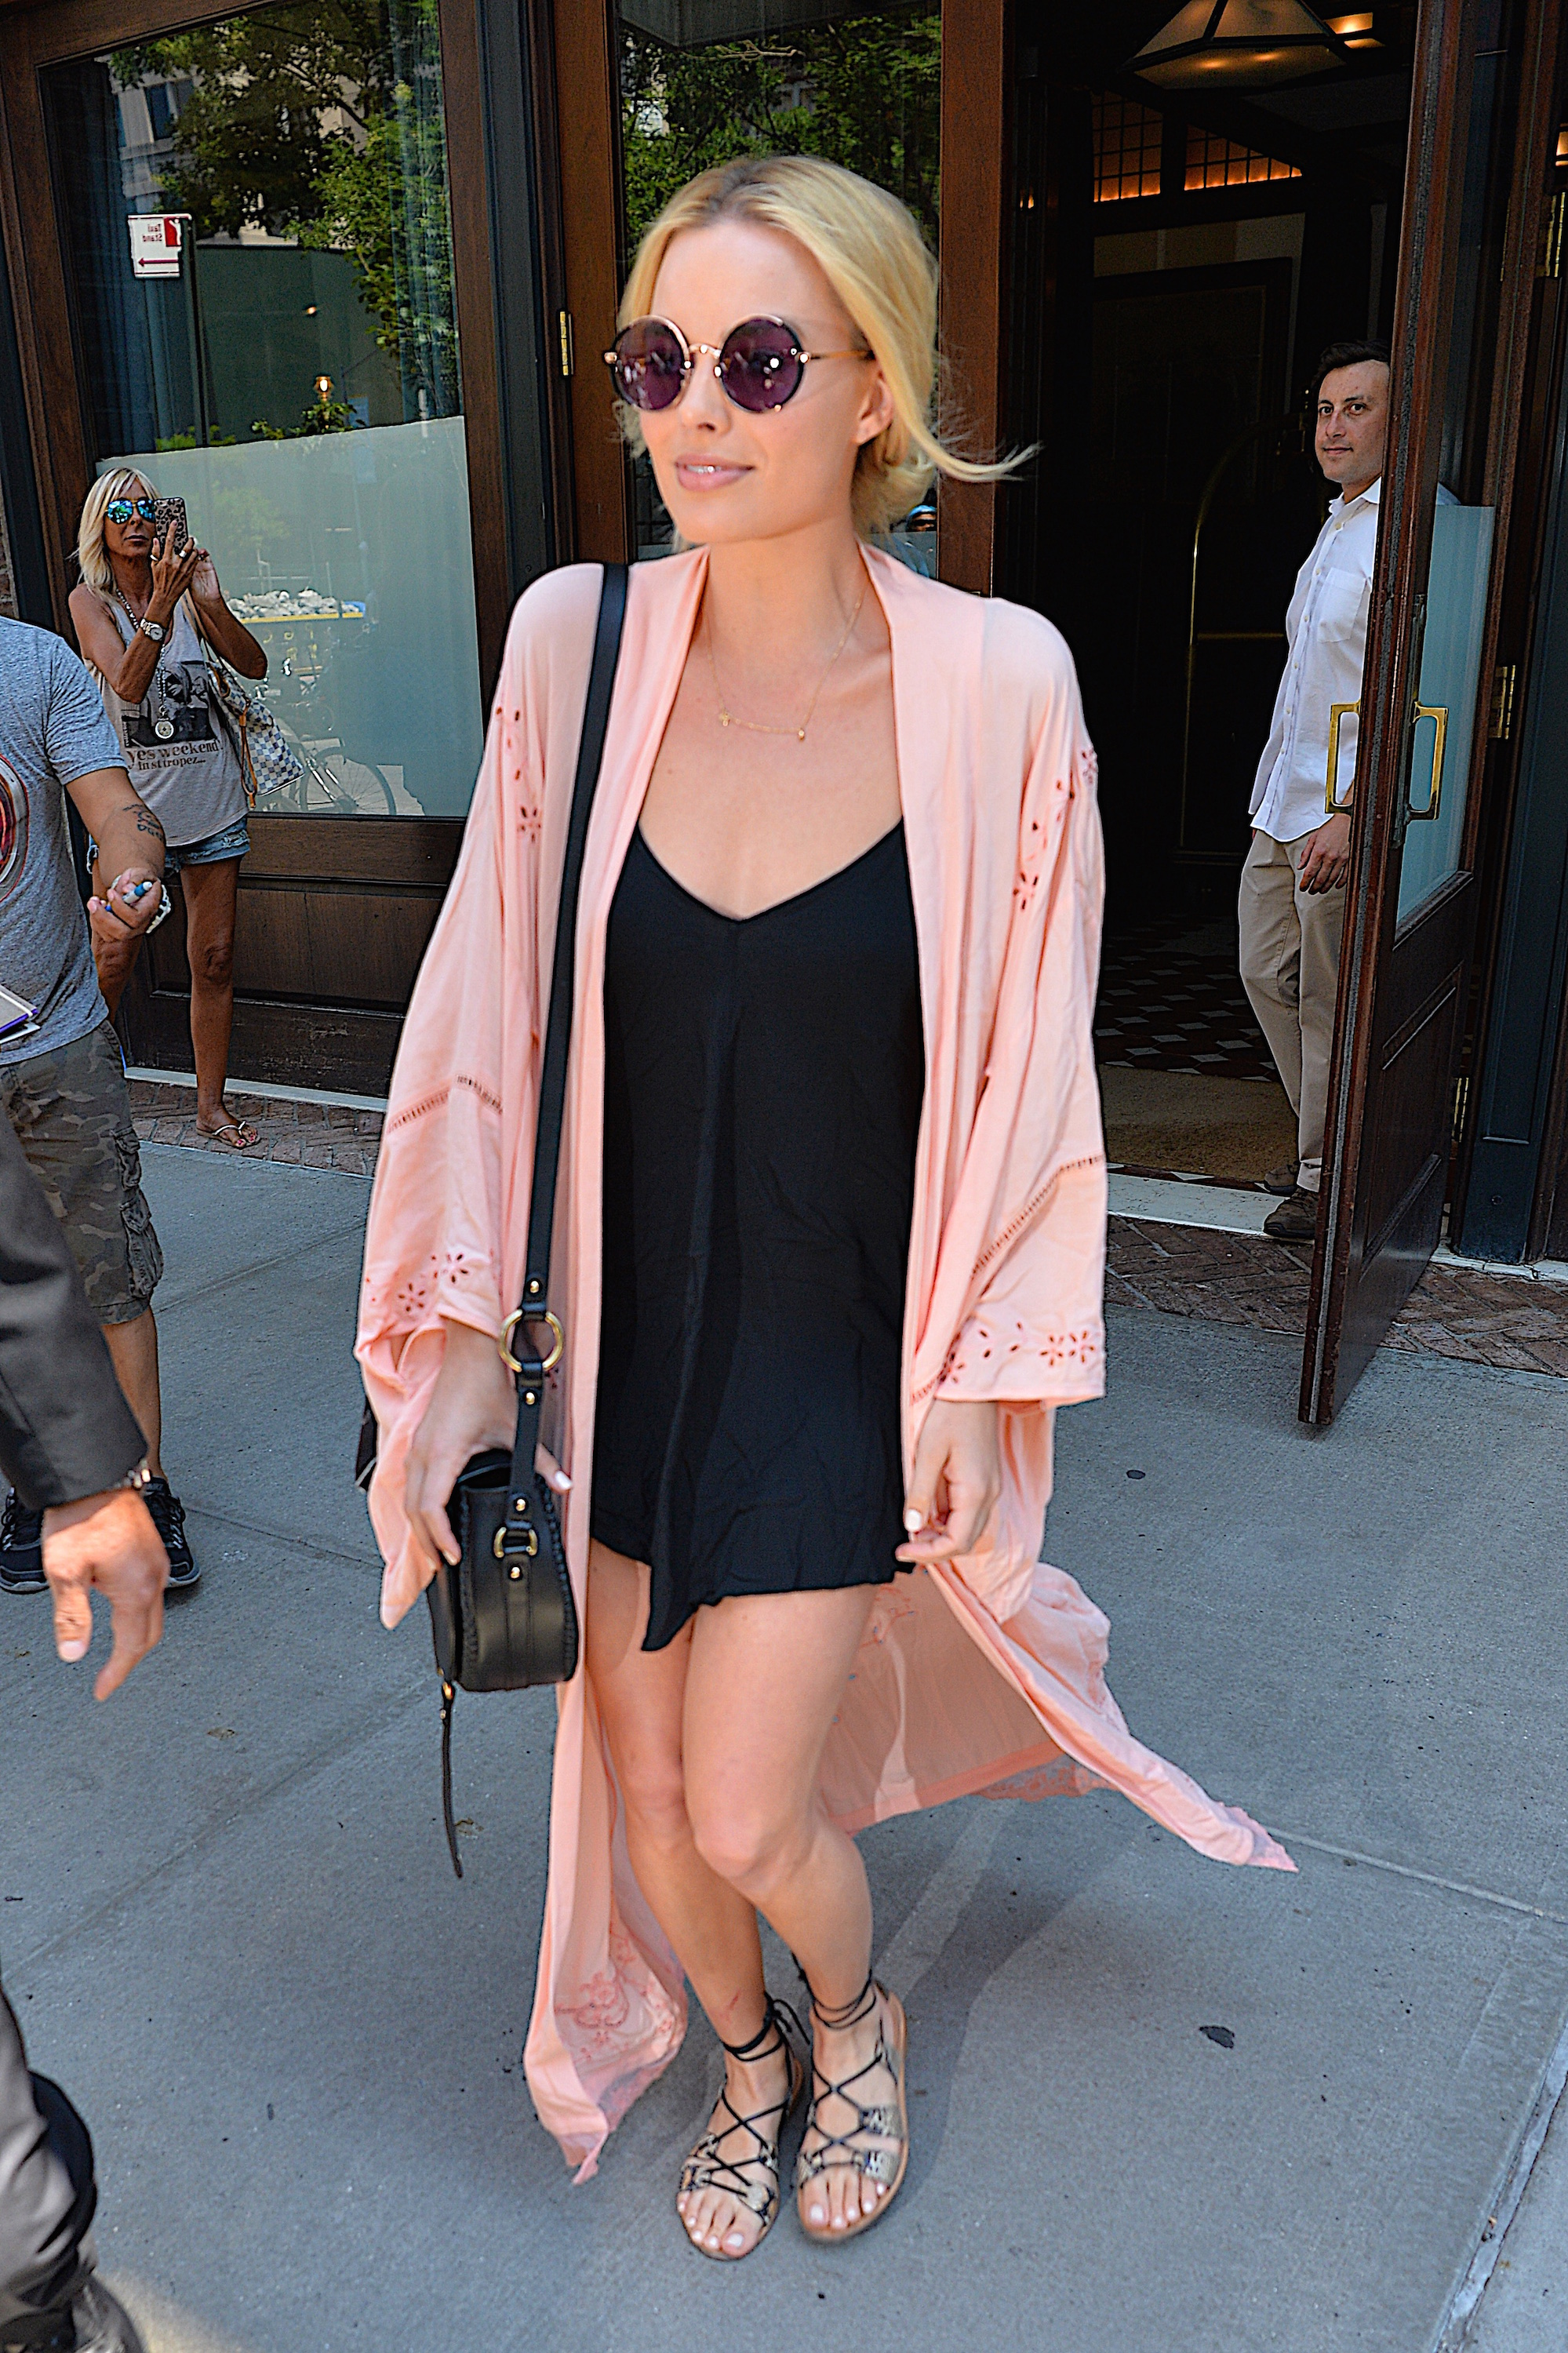 margot robbie gives us all the kimono dreams forever with